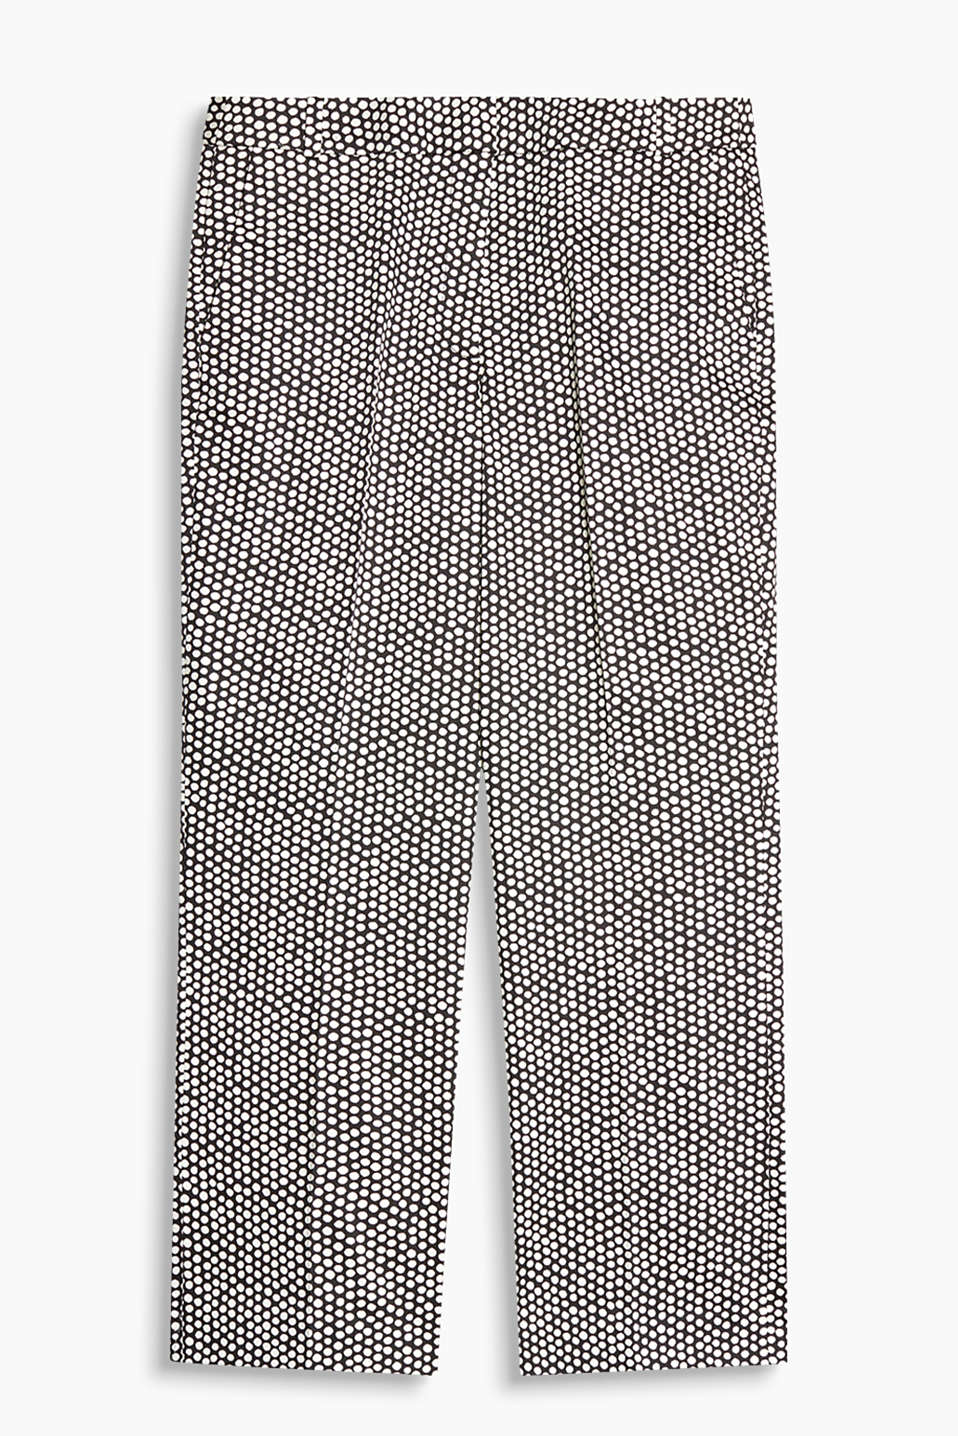 Stretch trousers in a kick flare style with a minimalist print